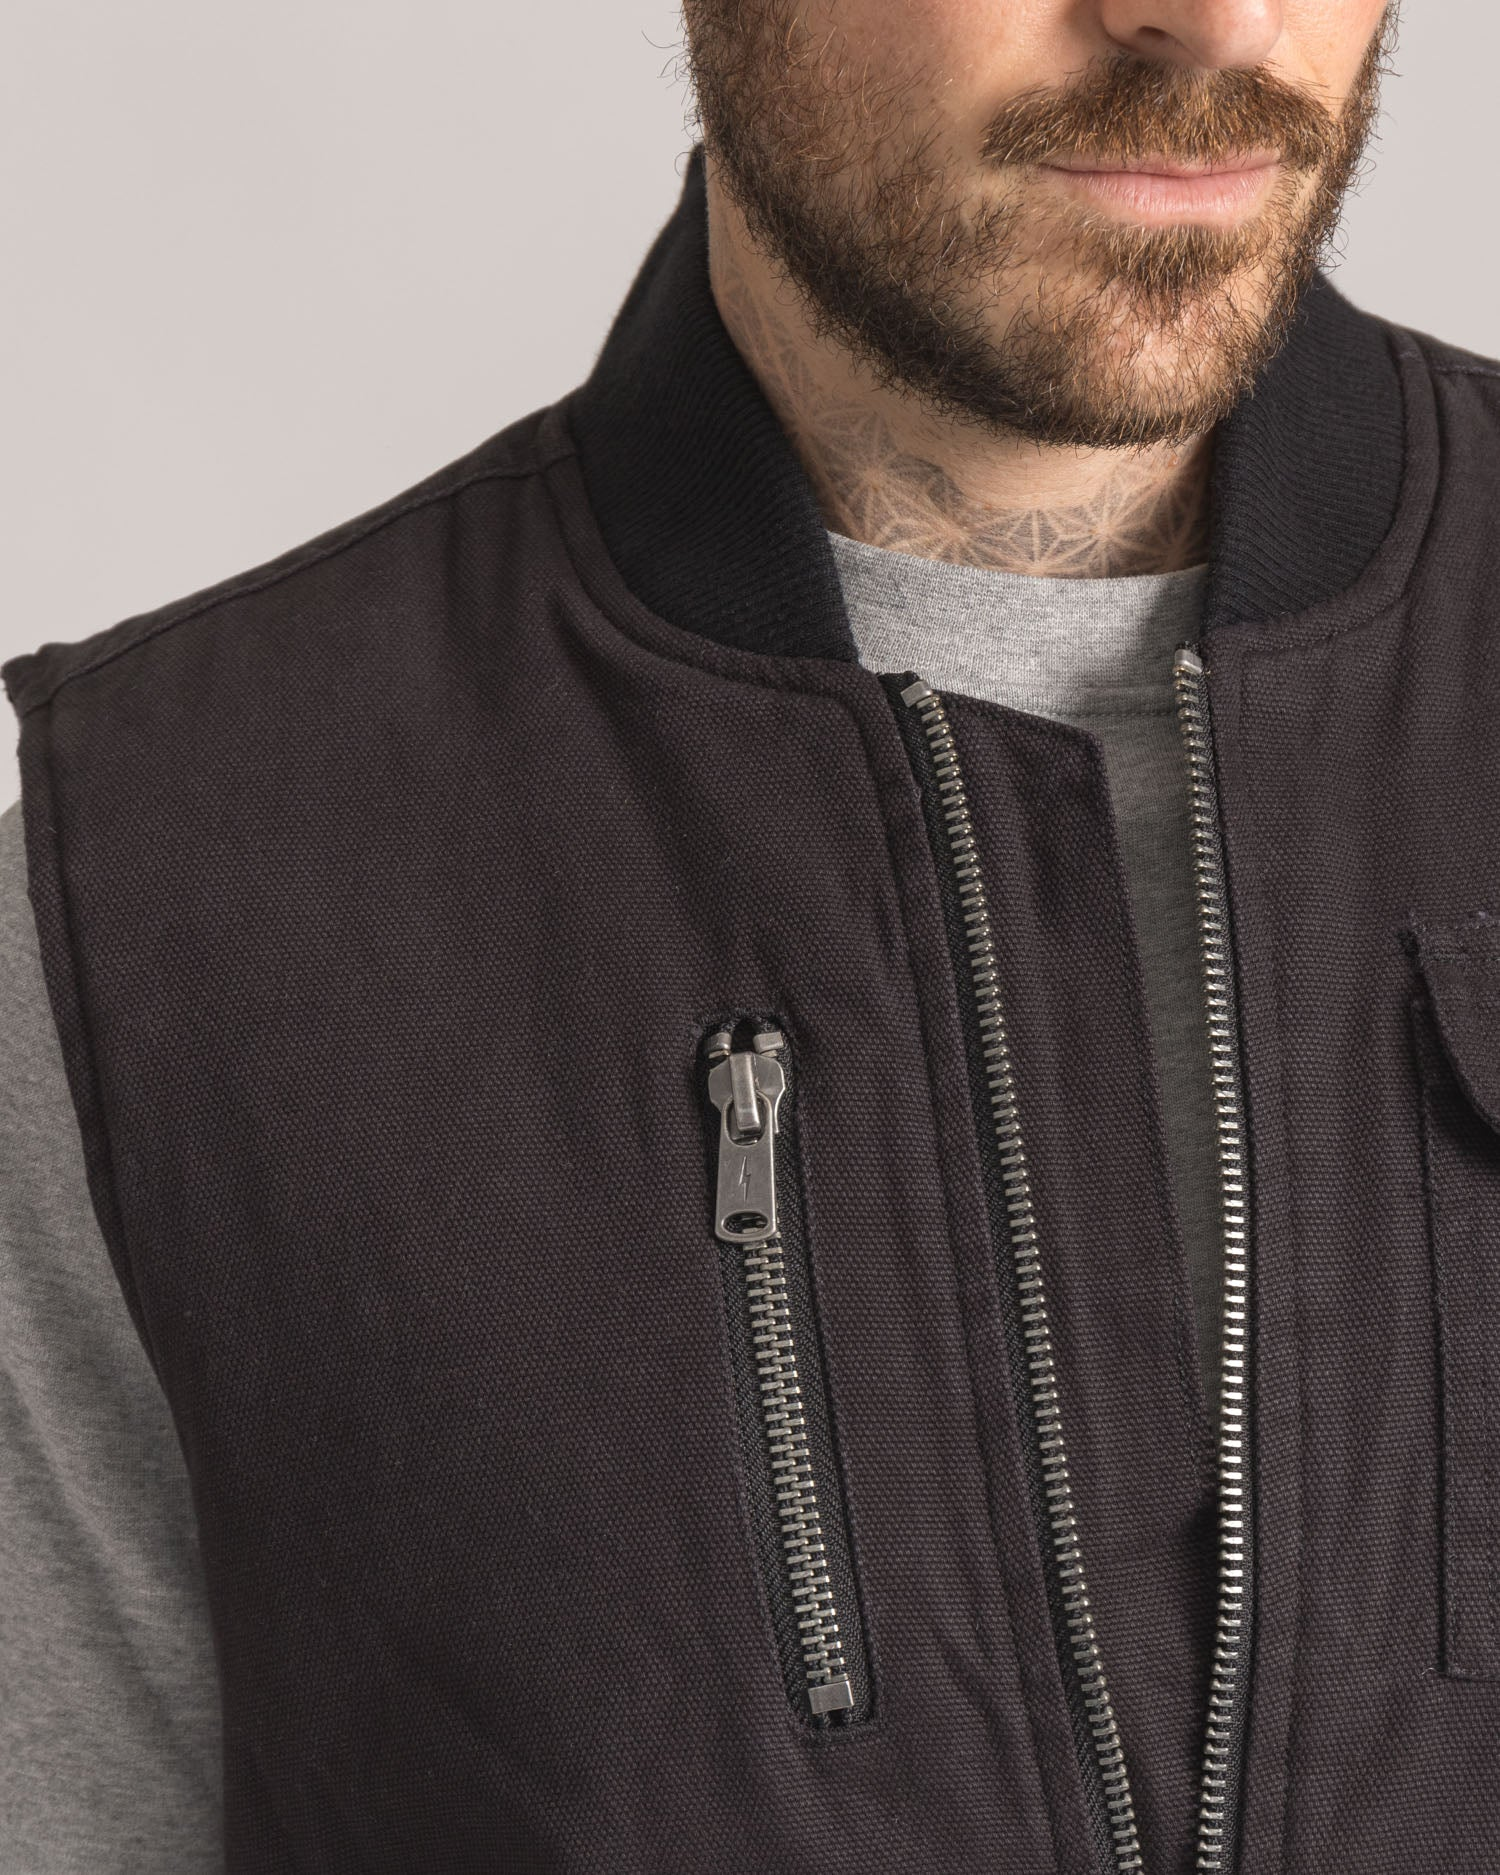 Zip Pocket on a Black cotton Gilet